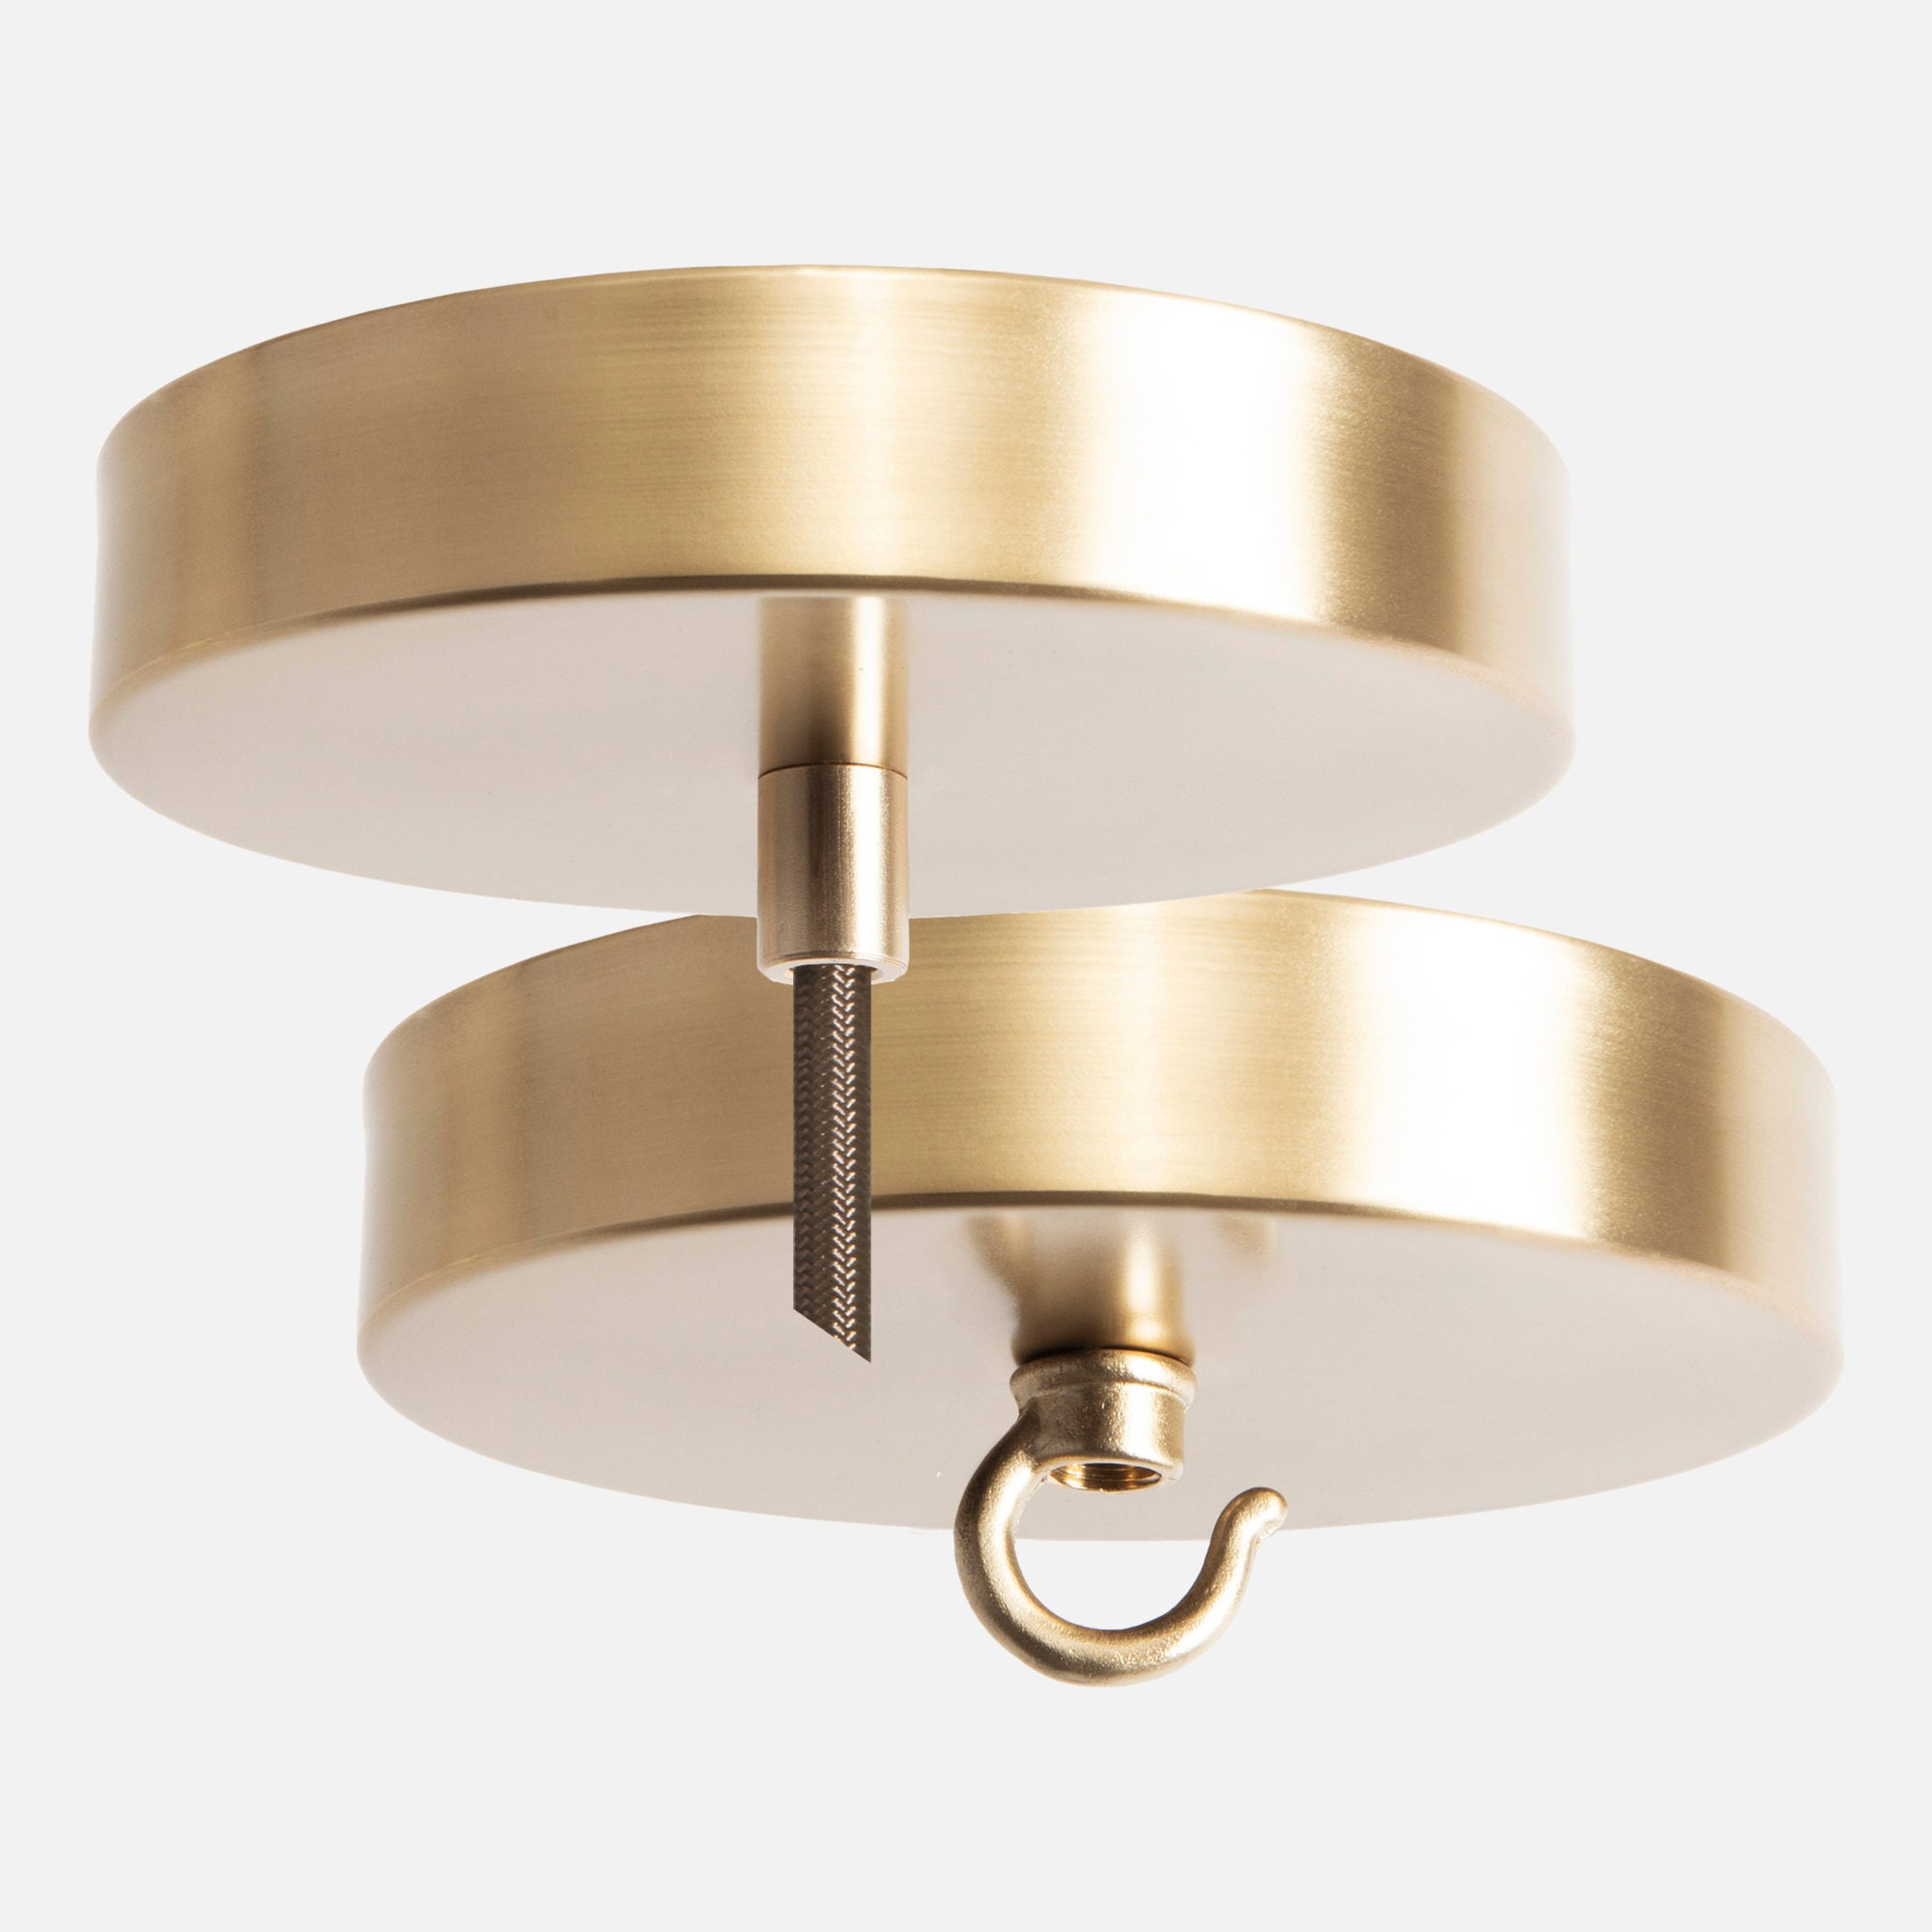 Ceiling Lamp Canopy: Ceiling Canopy Kit Brass Pendant Light Canopy Kit Pendant